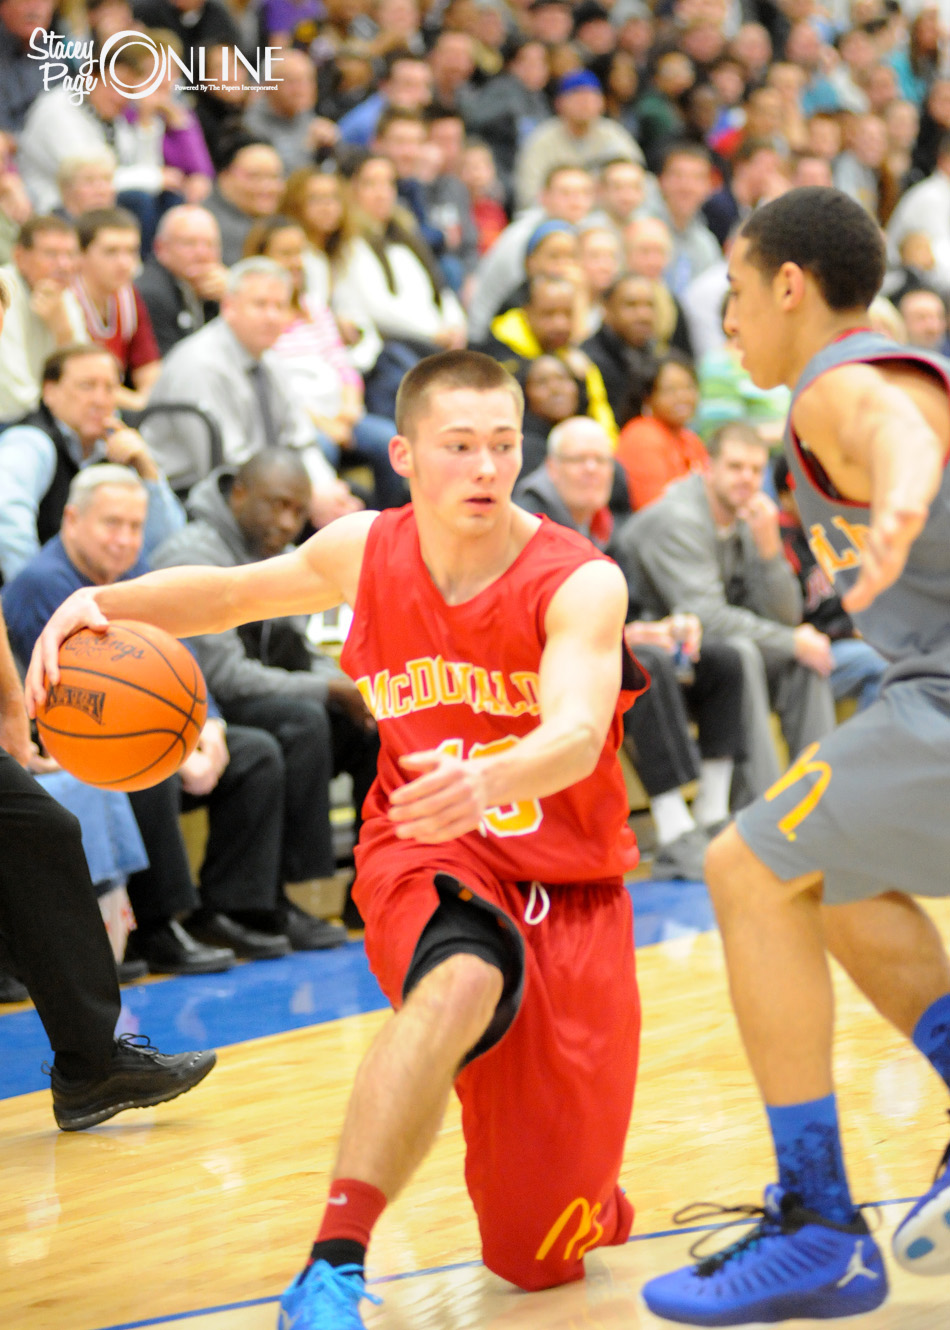 Warsaw's Jared Bloom goes past a defender Monday night during the McDonald's Michiana All-Star Game at Bethel College. Bloom scored 15 points to help his Red Team to a 140-122 win (Photos by Mike Deak)